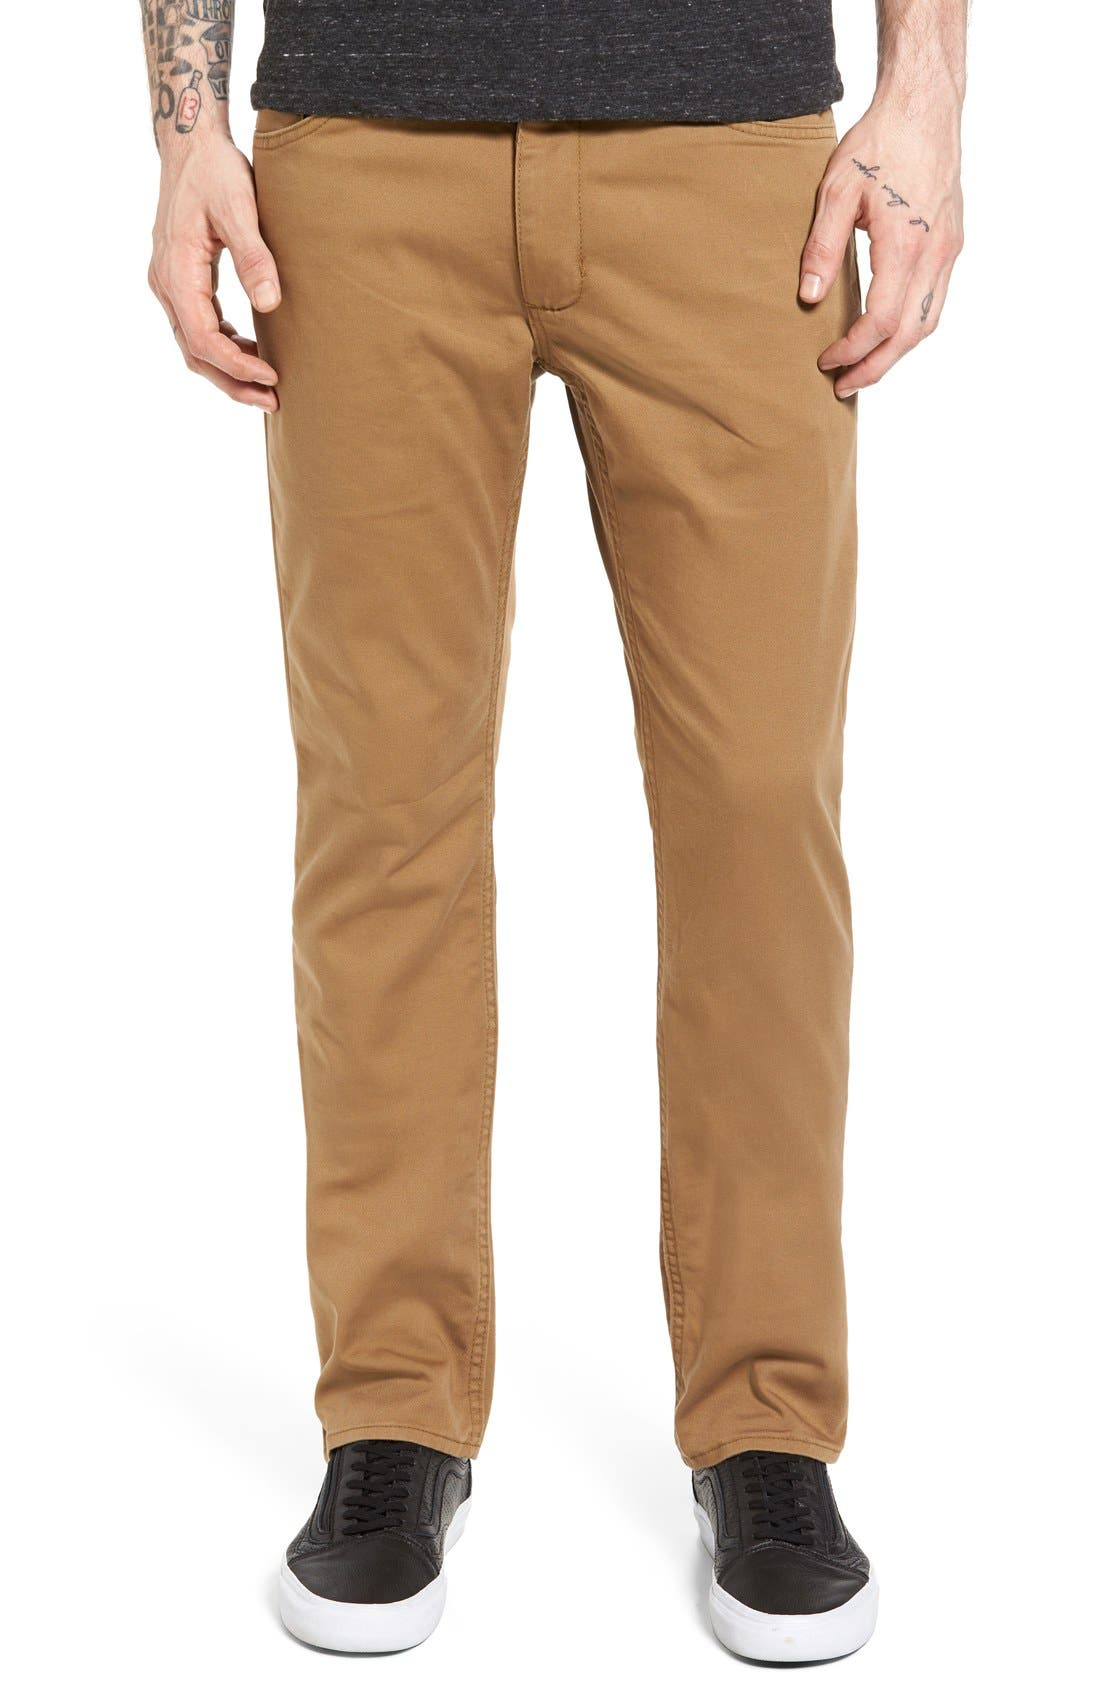 Main Image - Vans V56 Covina II Slim Fit Pants